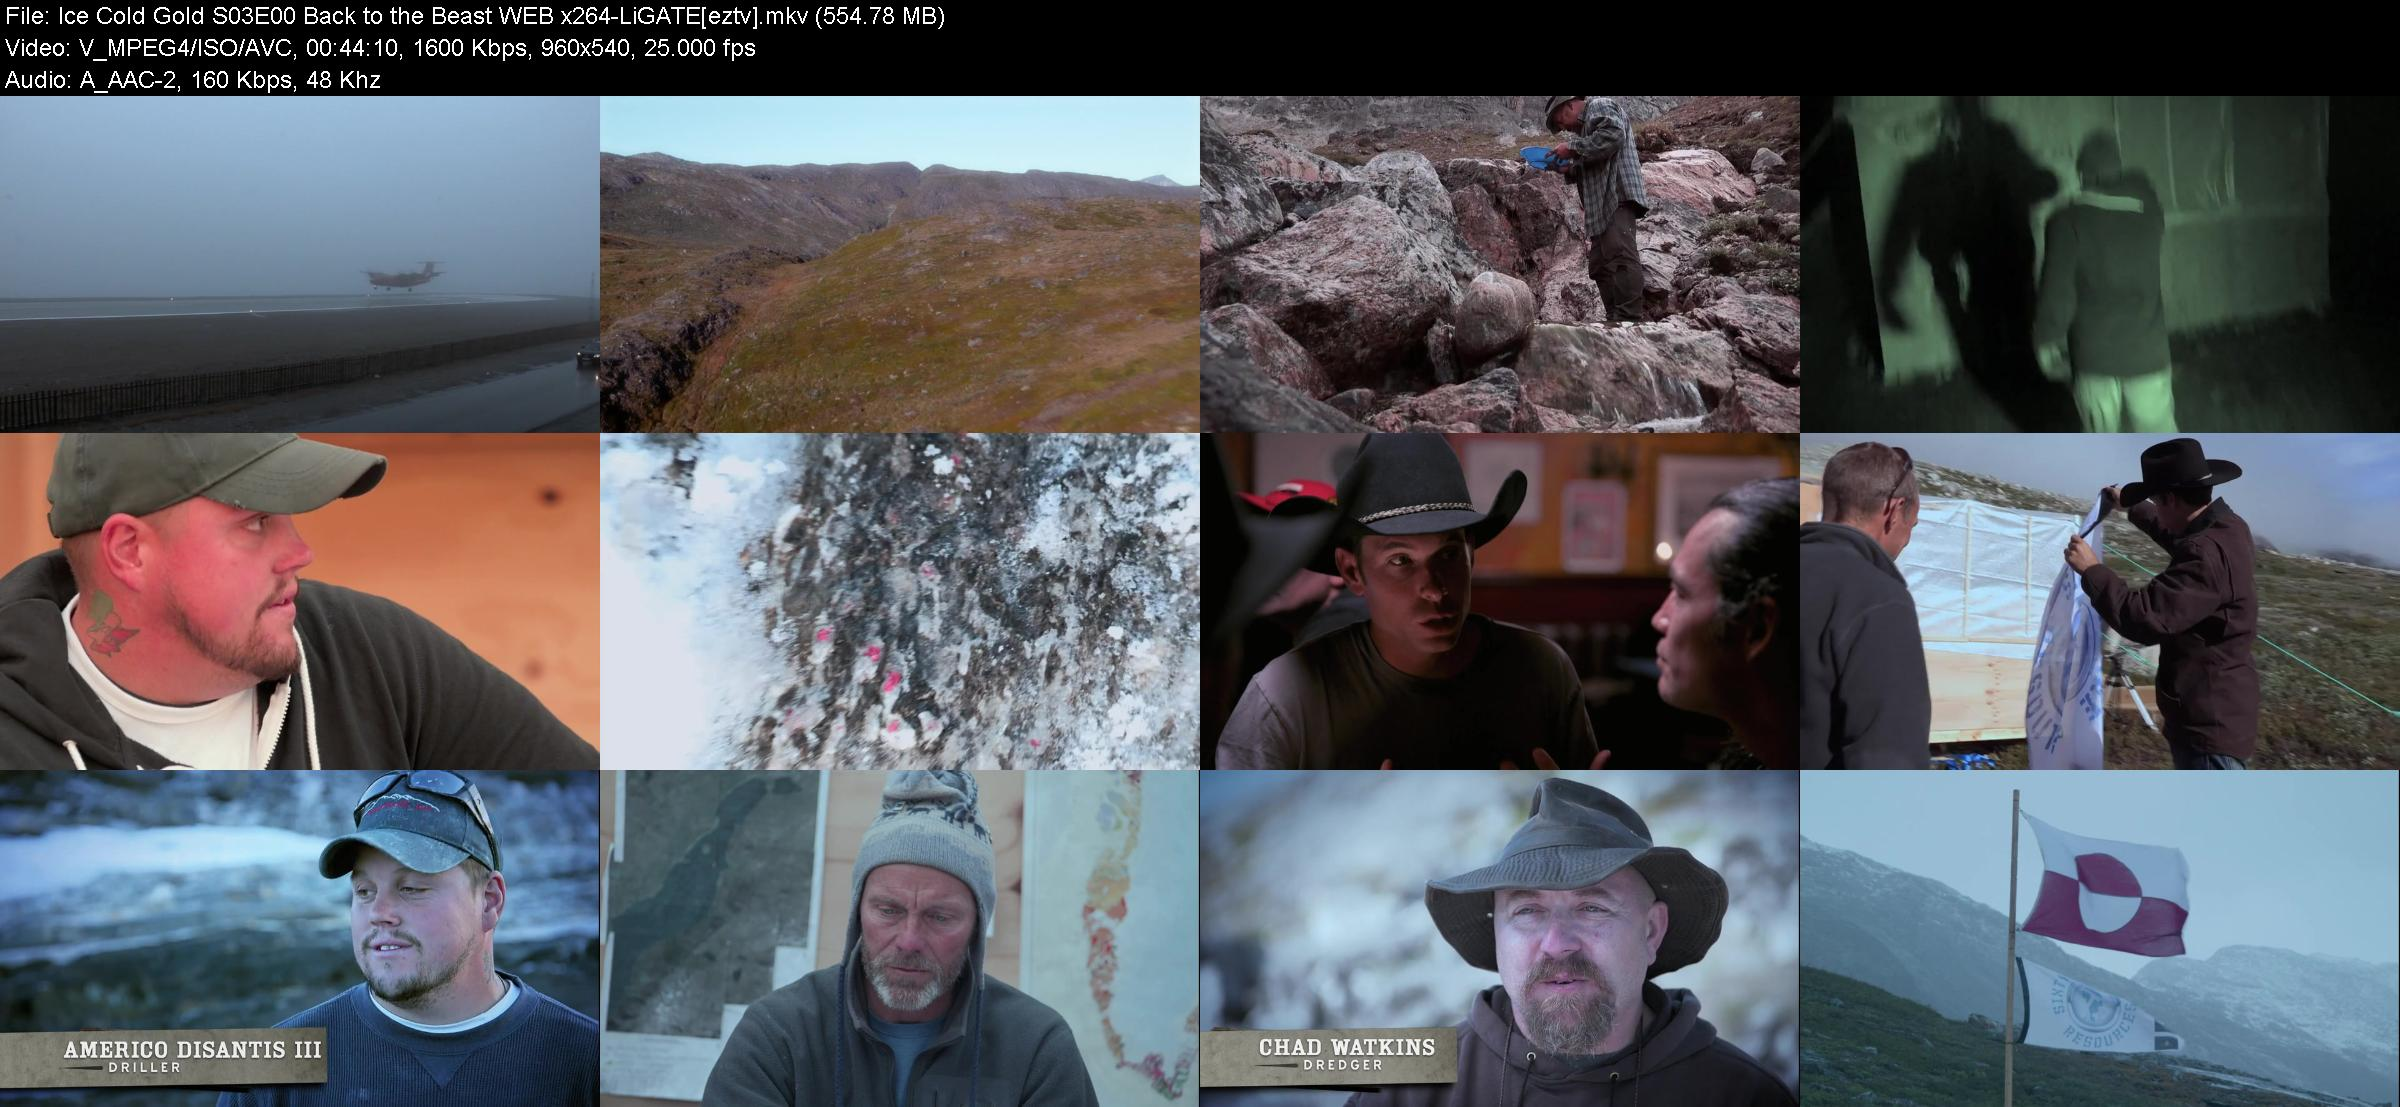 Ice Cold Gold S03E00 Back to the Beast WEB x264-LiGATE